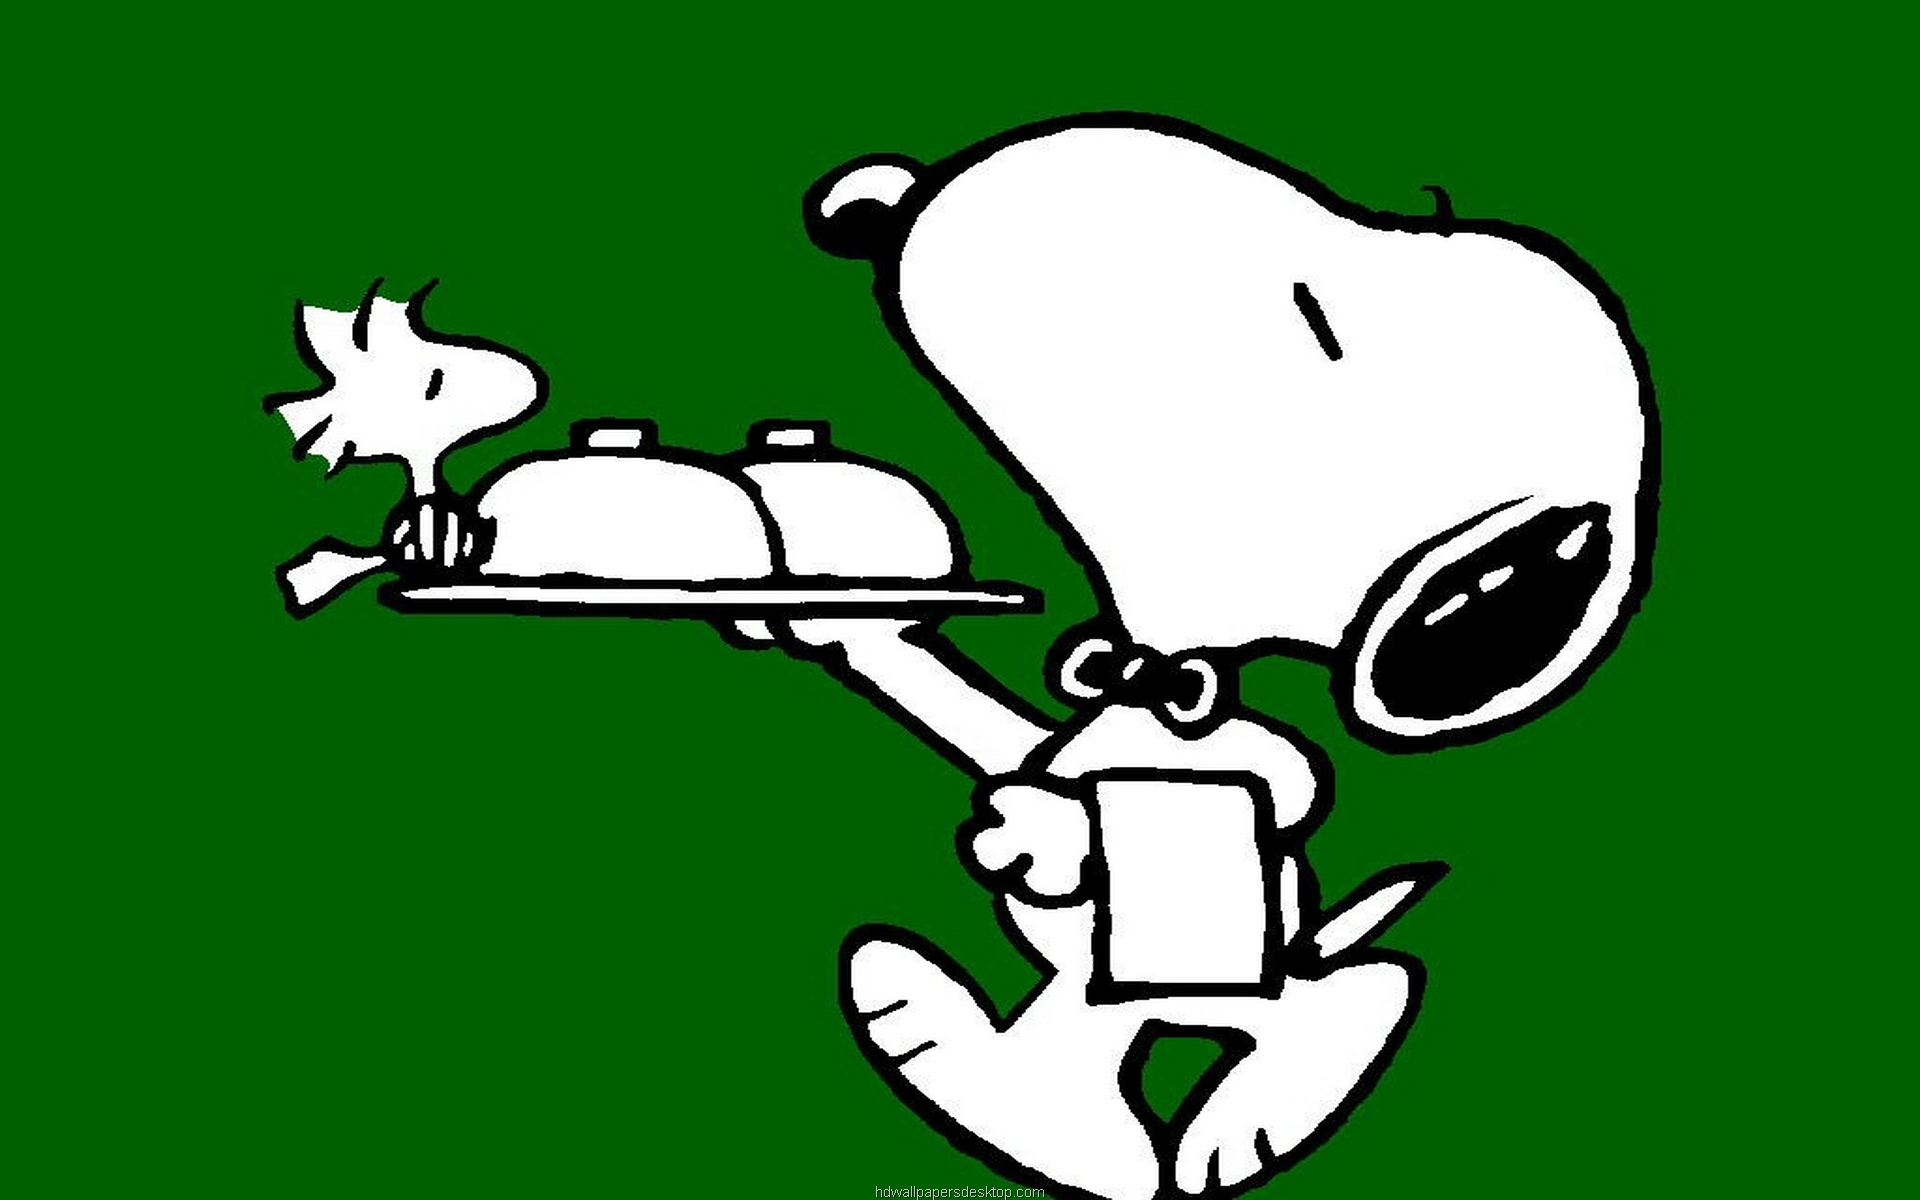 Snoopy Wallpapers Snoopy Wallpaper 1 1920x1200